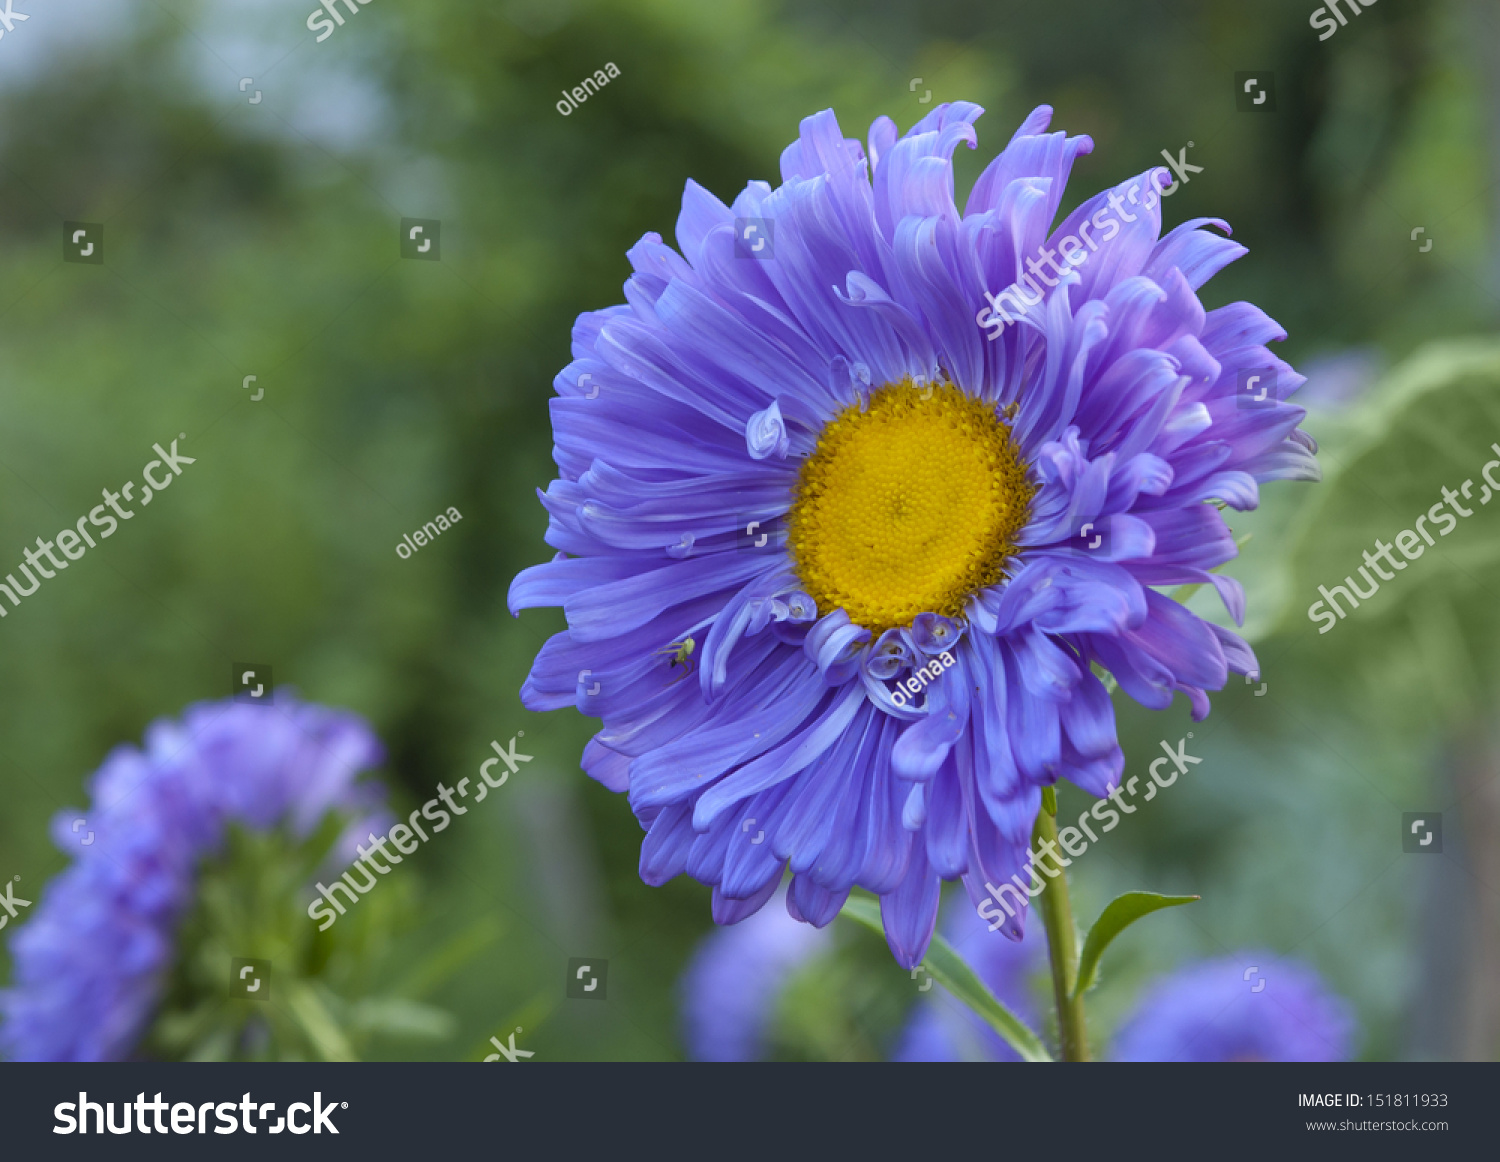 Blue Aster Flower Bed Stock Photo Edit Now 151811933 Shutterstock